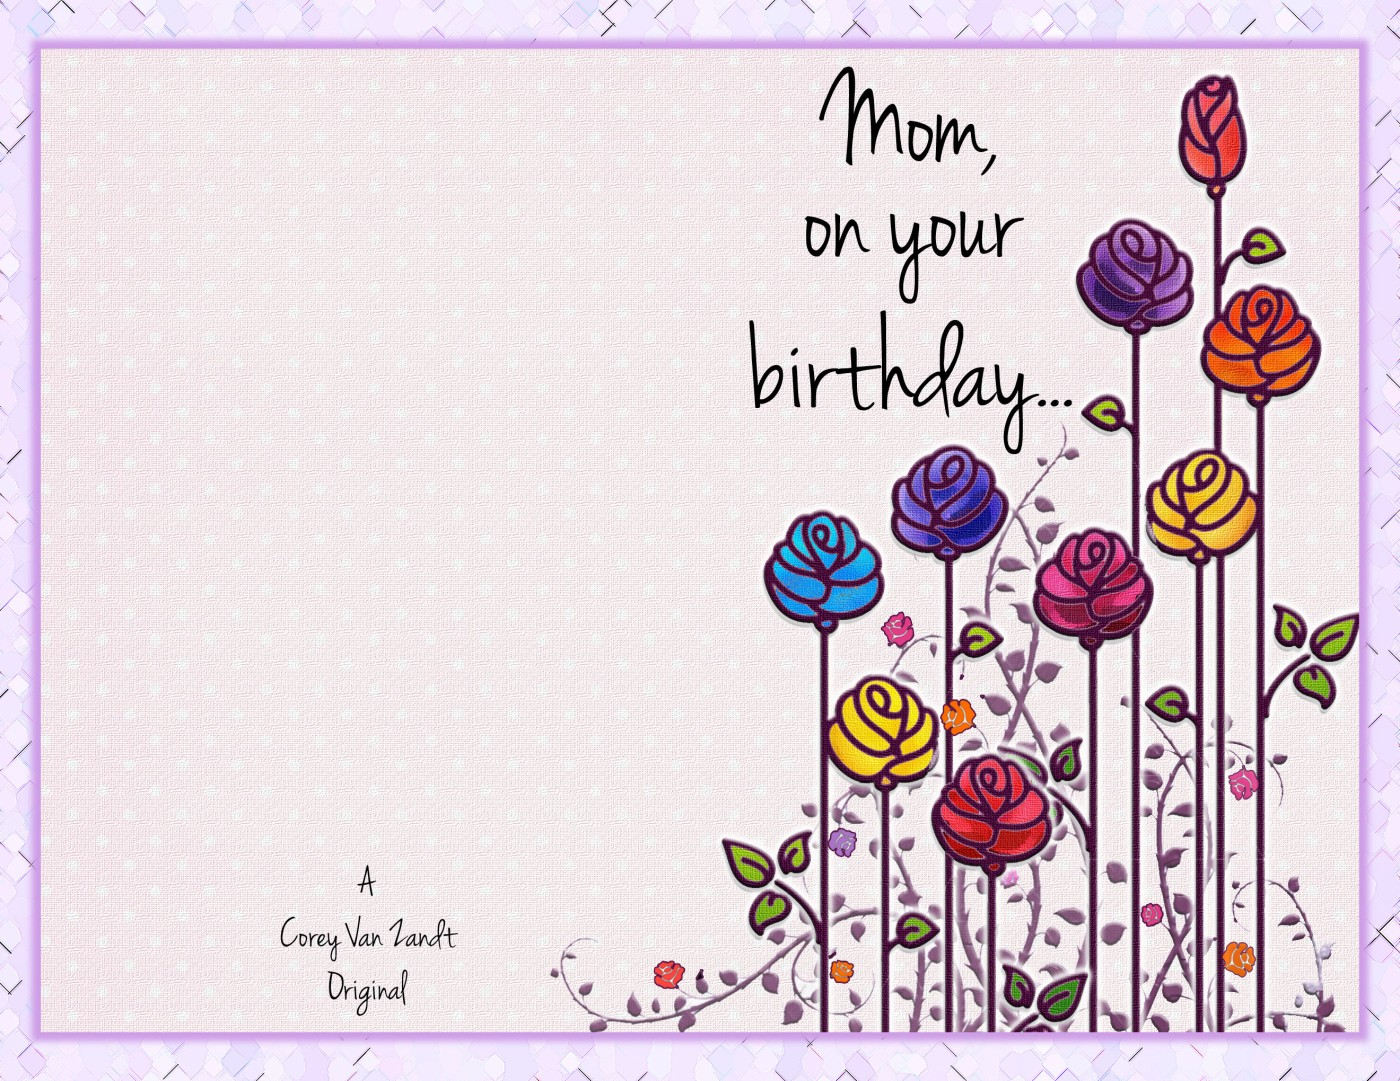 I Like To Create Personalized Cards Every Once In A While And Decided Do So For My Moms Birthday Found Photoshop Template Online The Average